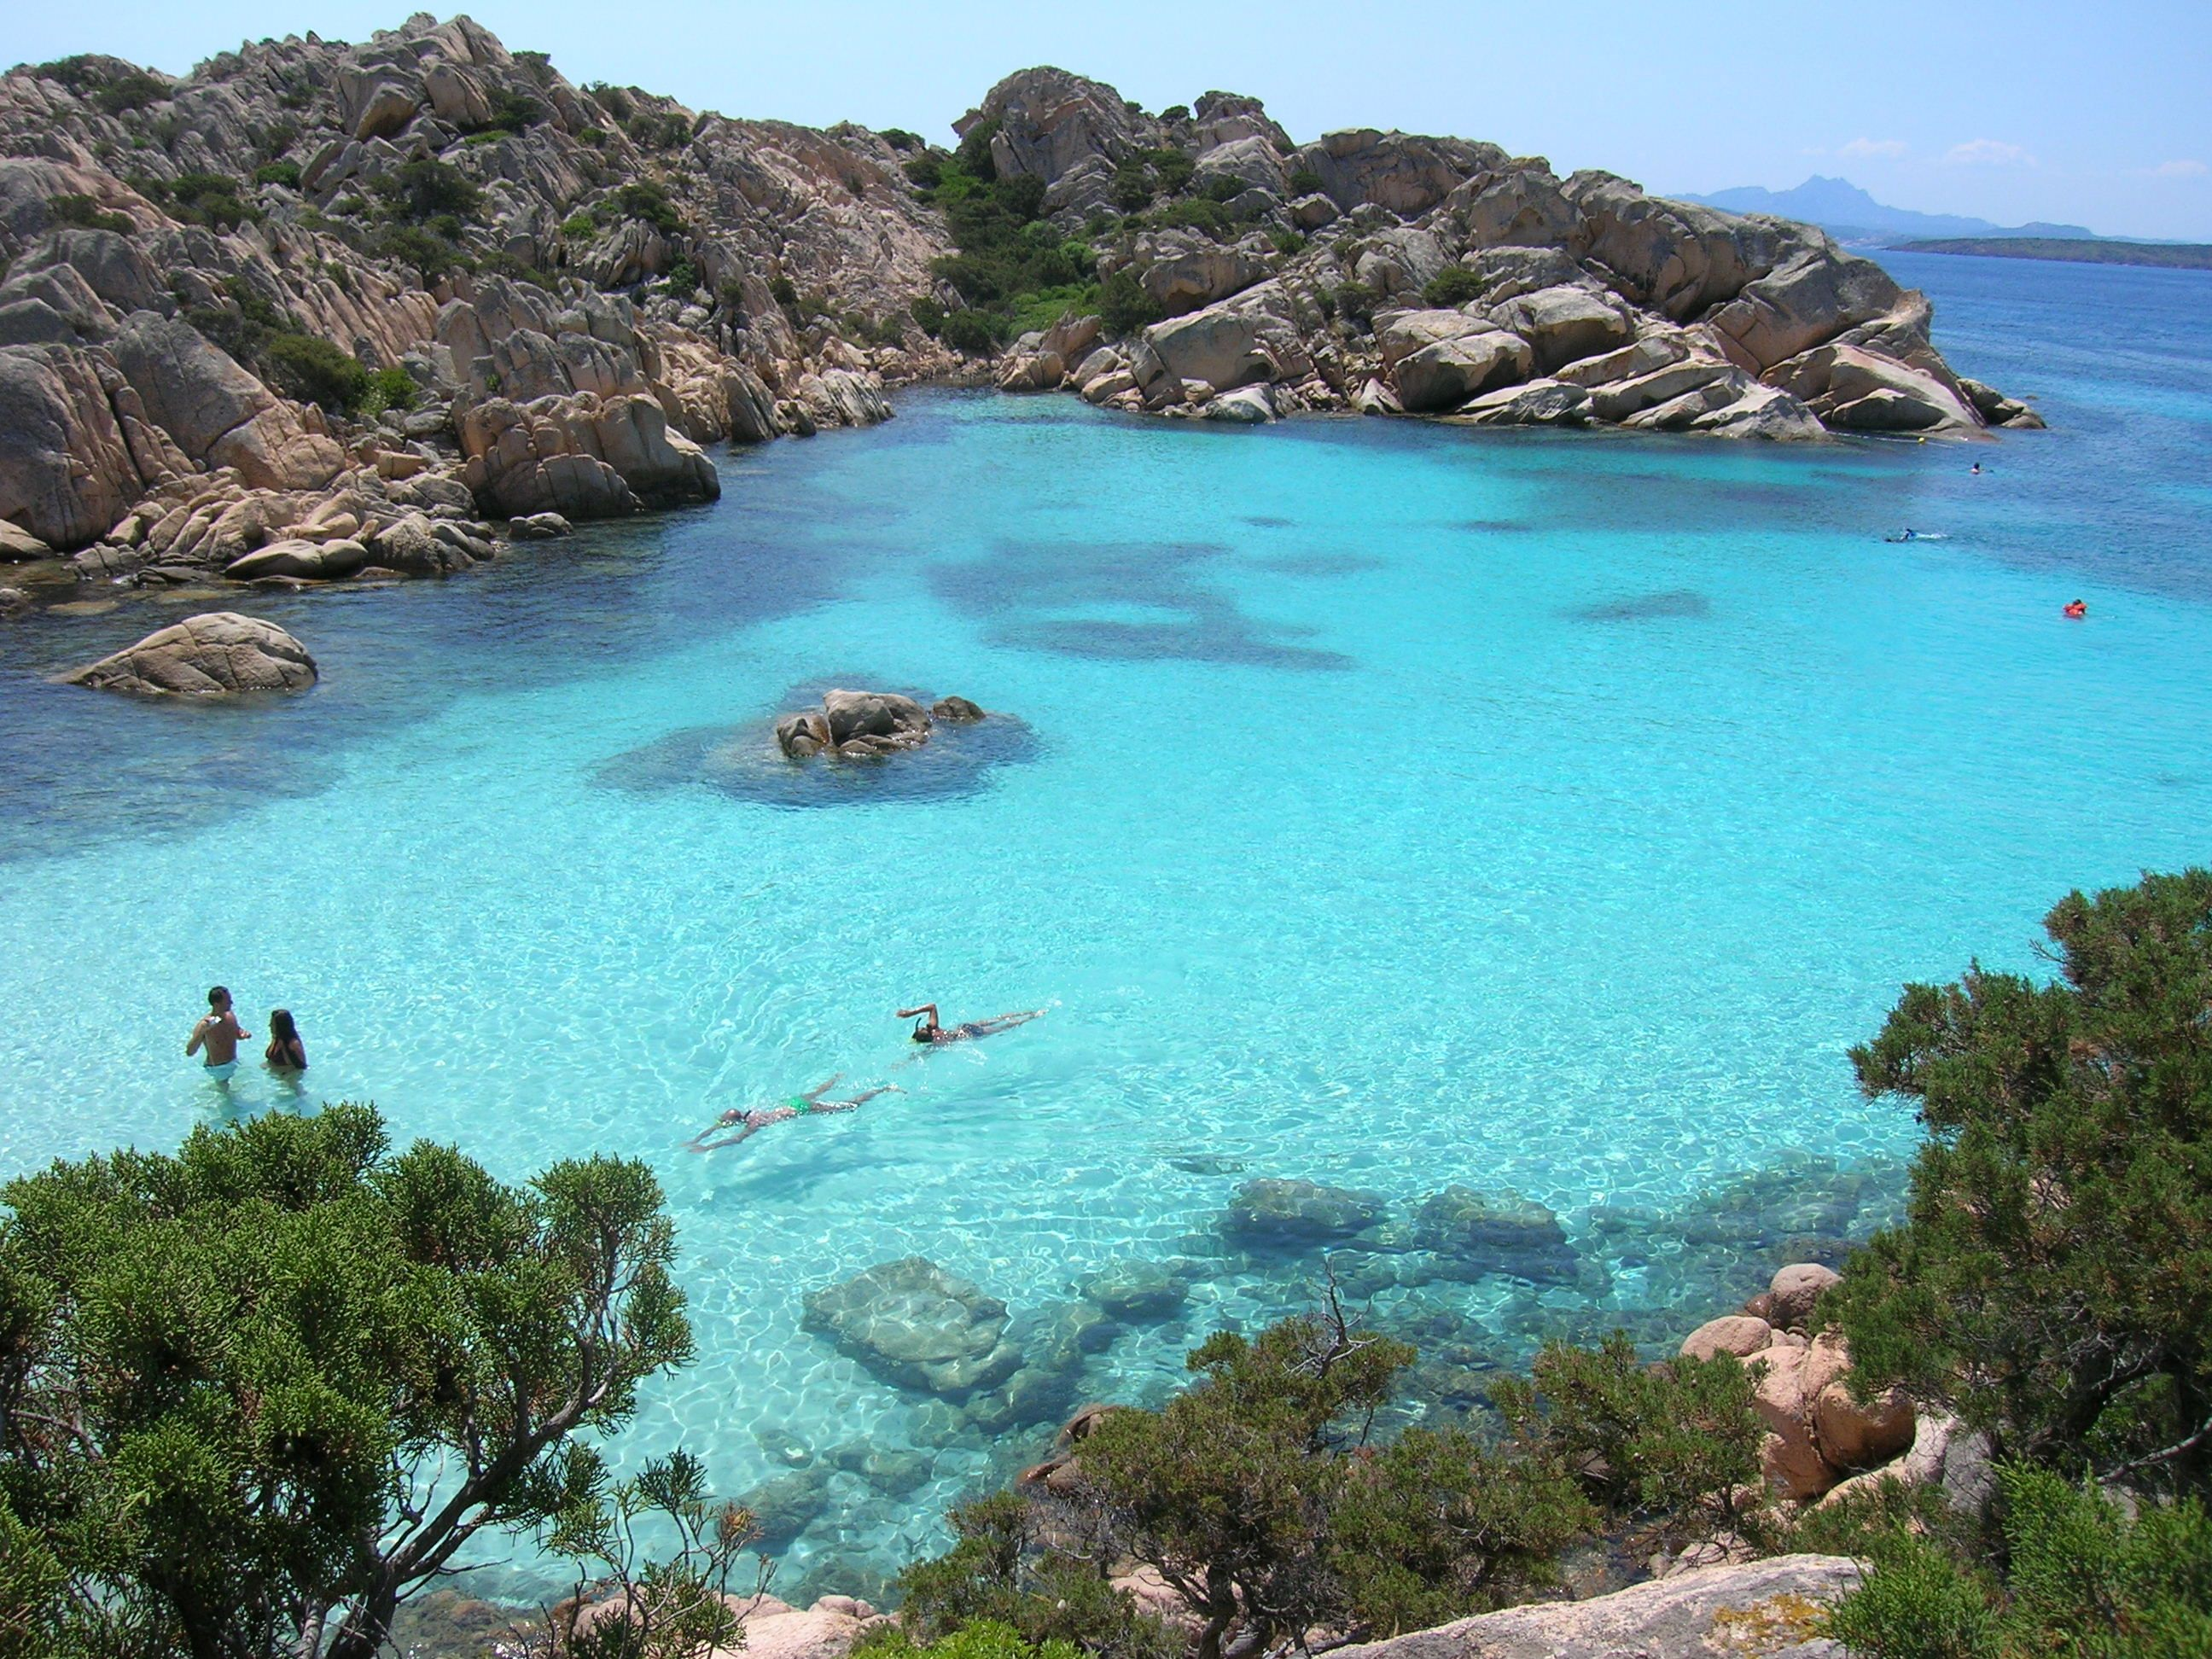 La Maddalena Sardinia Italy Its More Beautiful In Person I Loved Living On This Island For 3